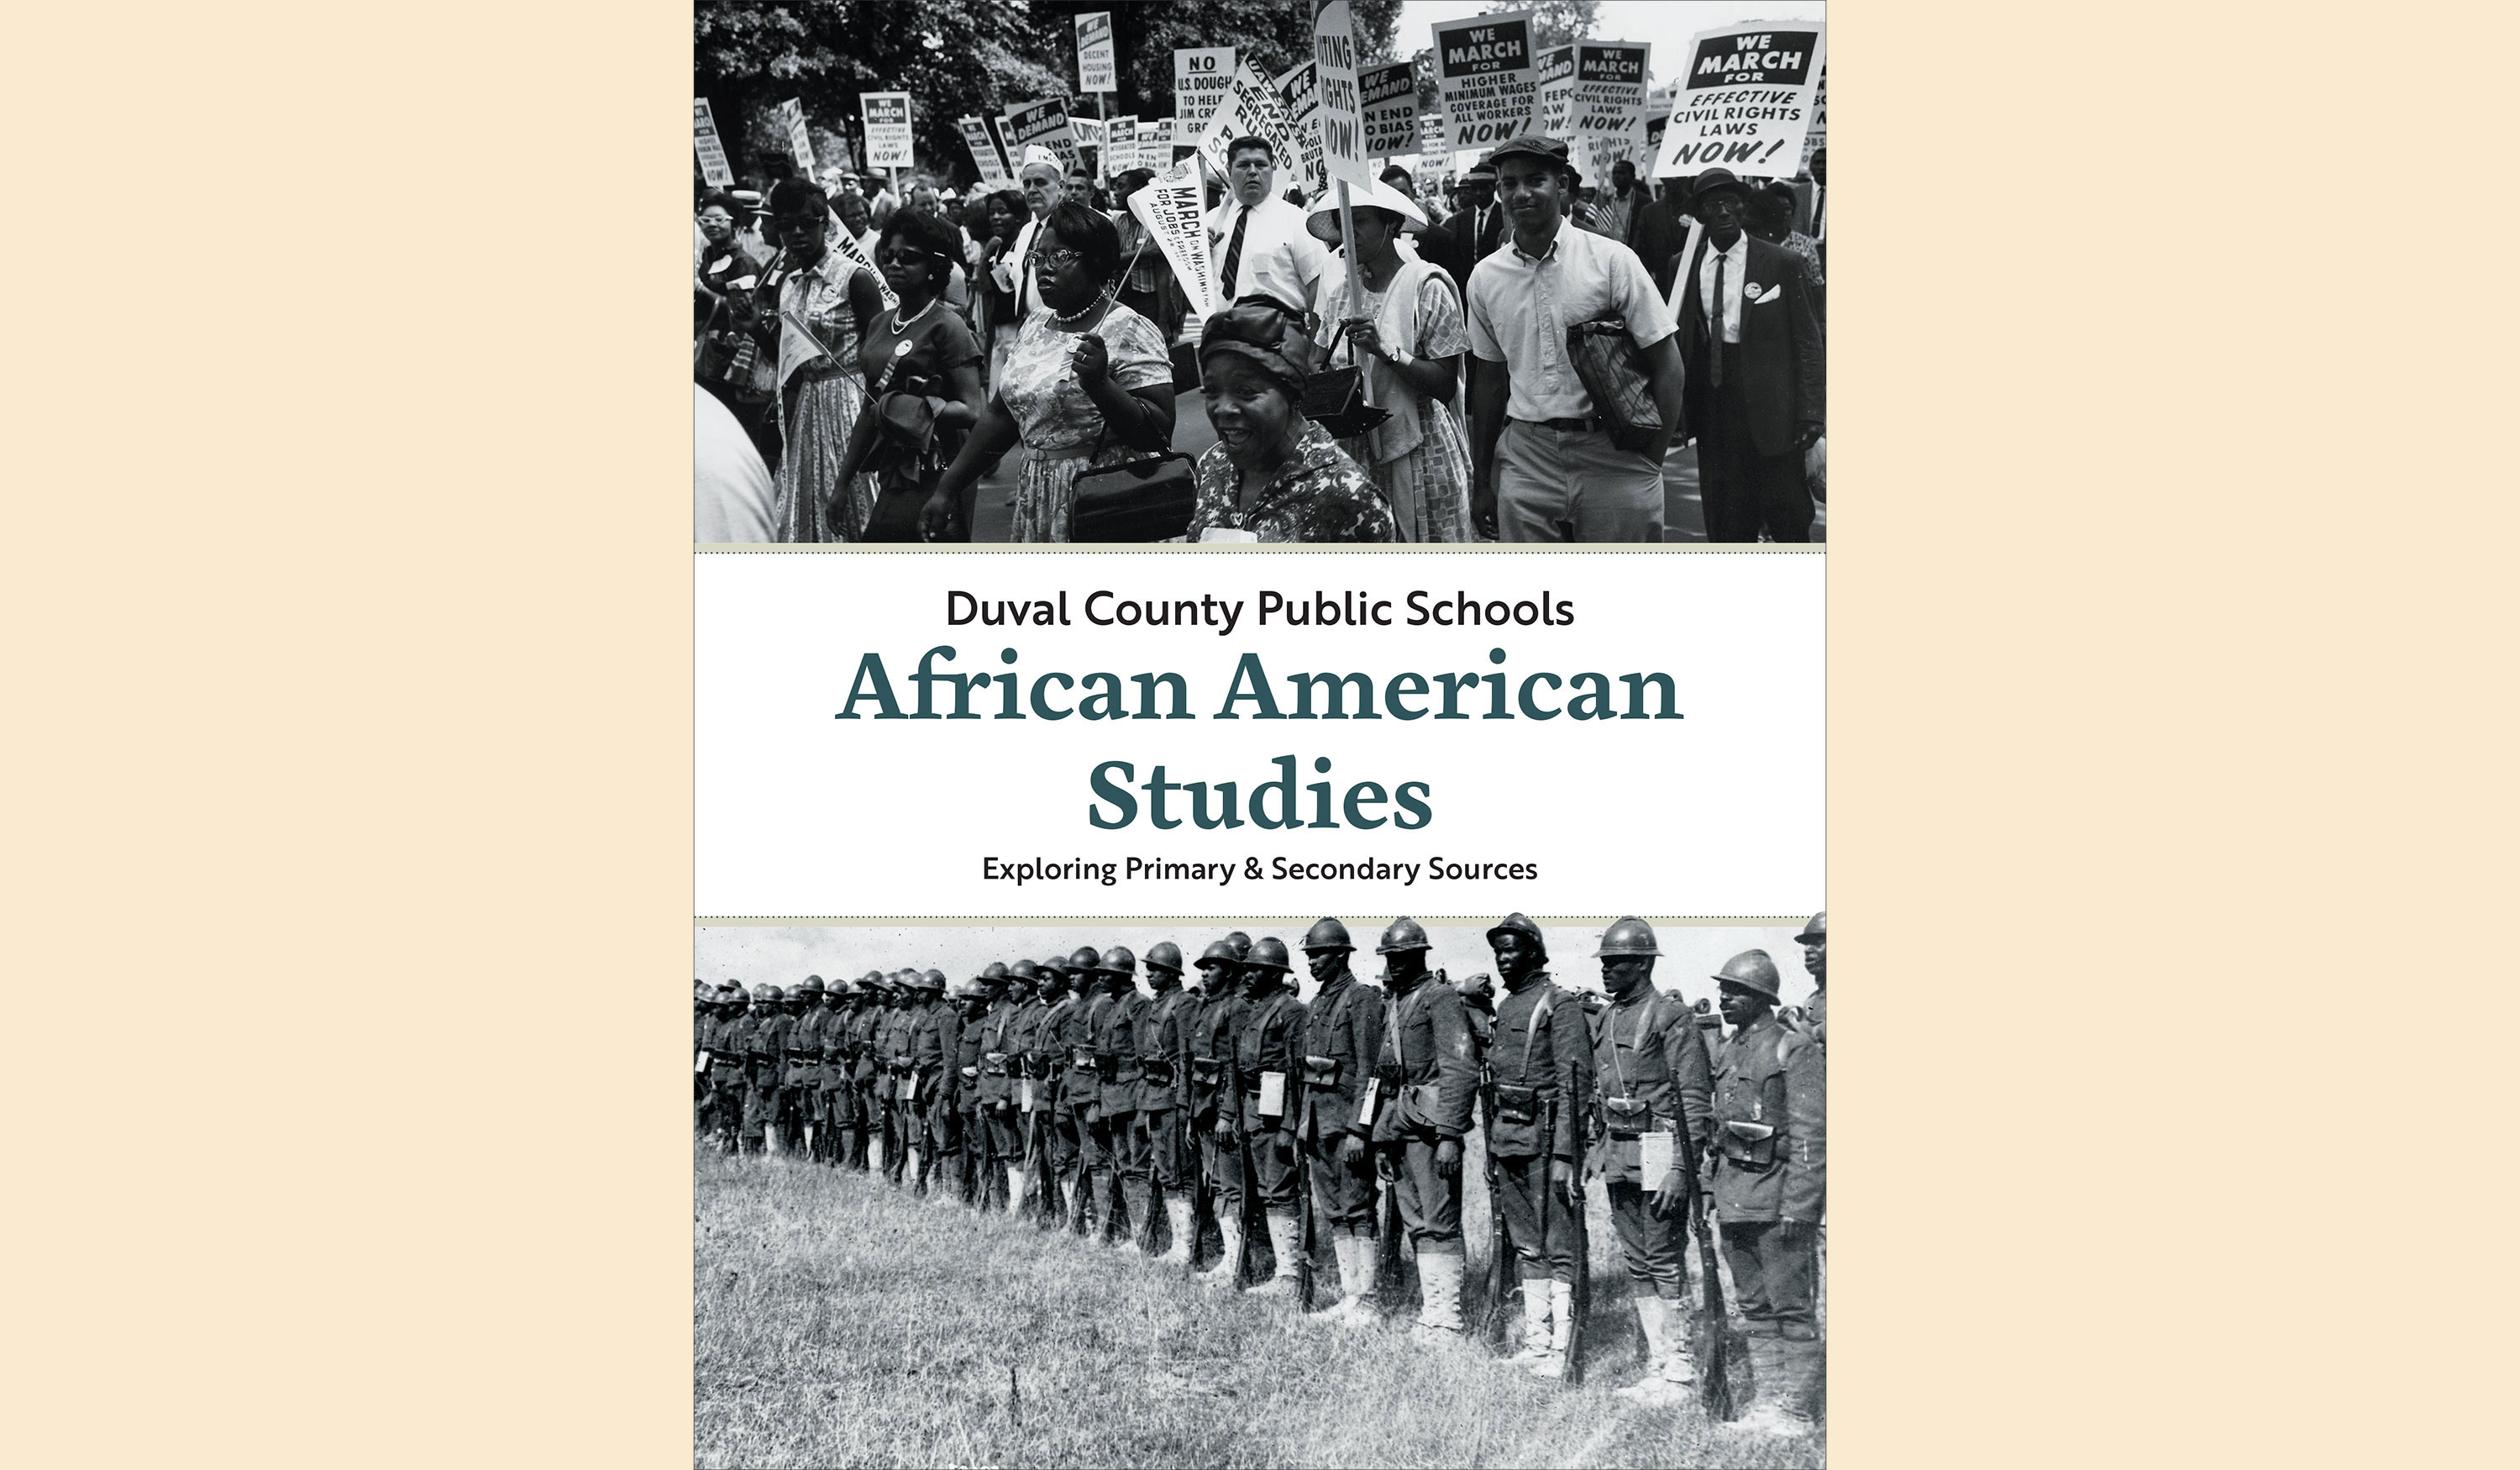 Beyond Traditional African American Studies: Using Local History to Increase Student Engagement